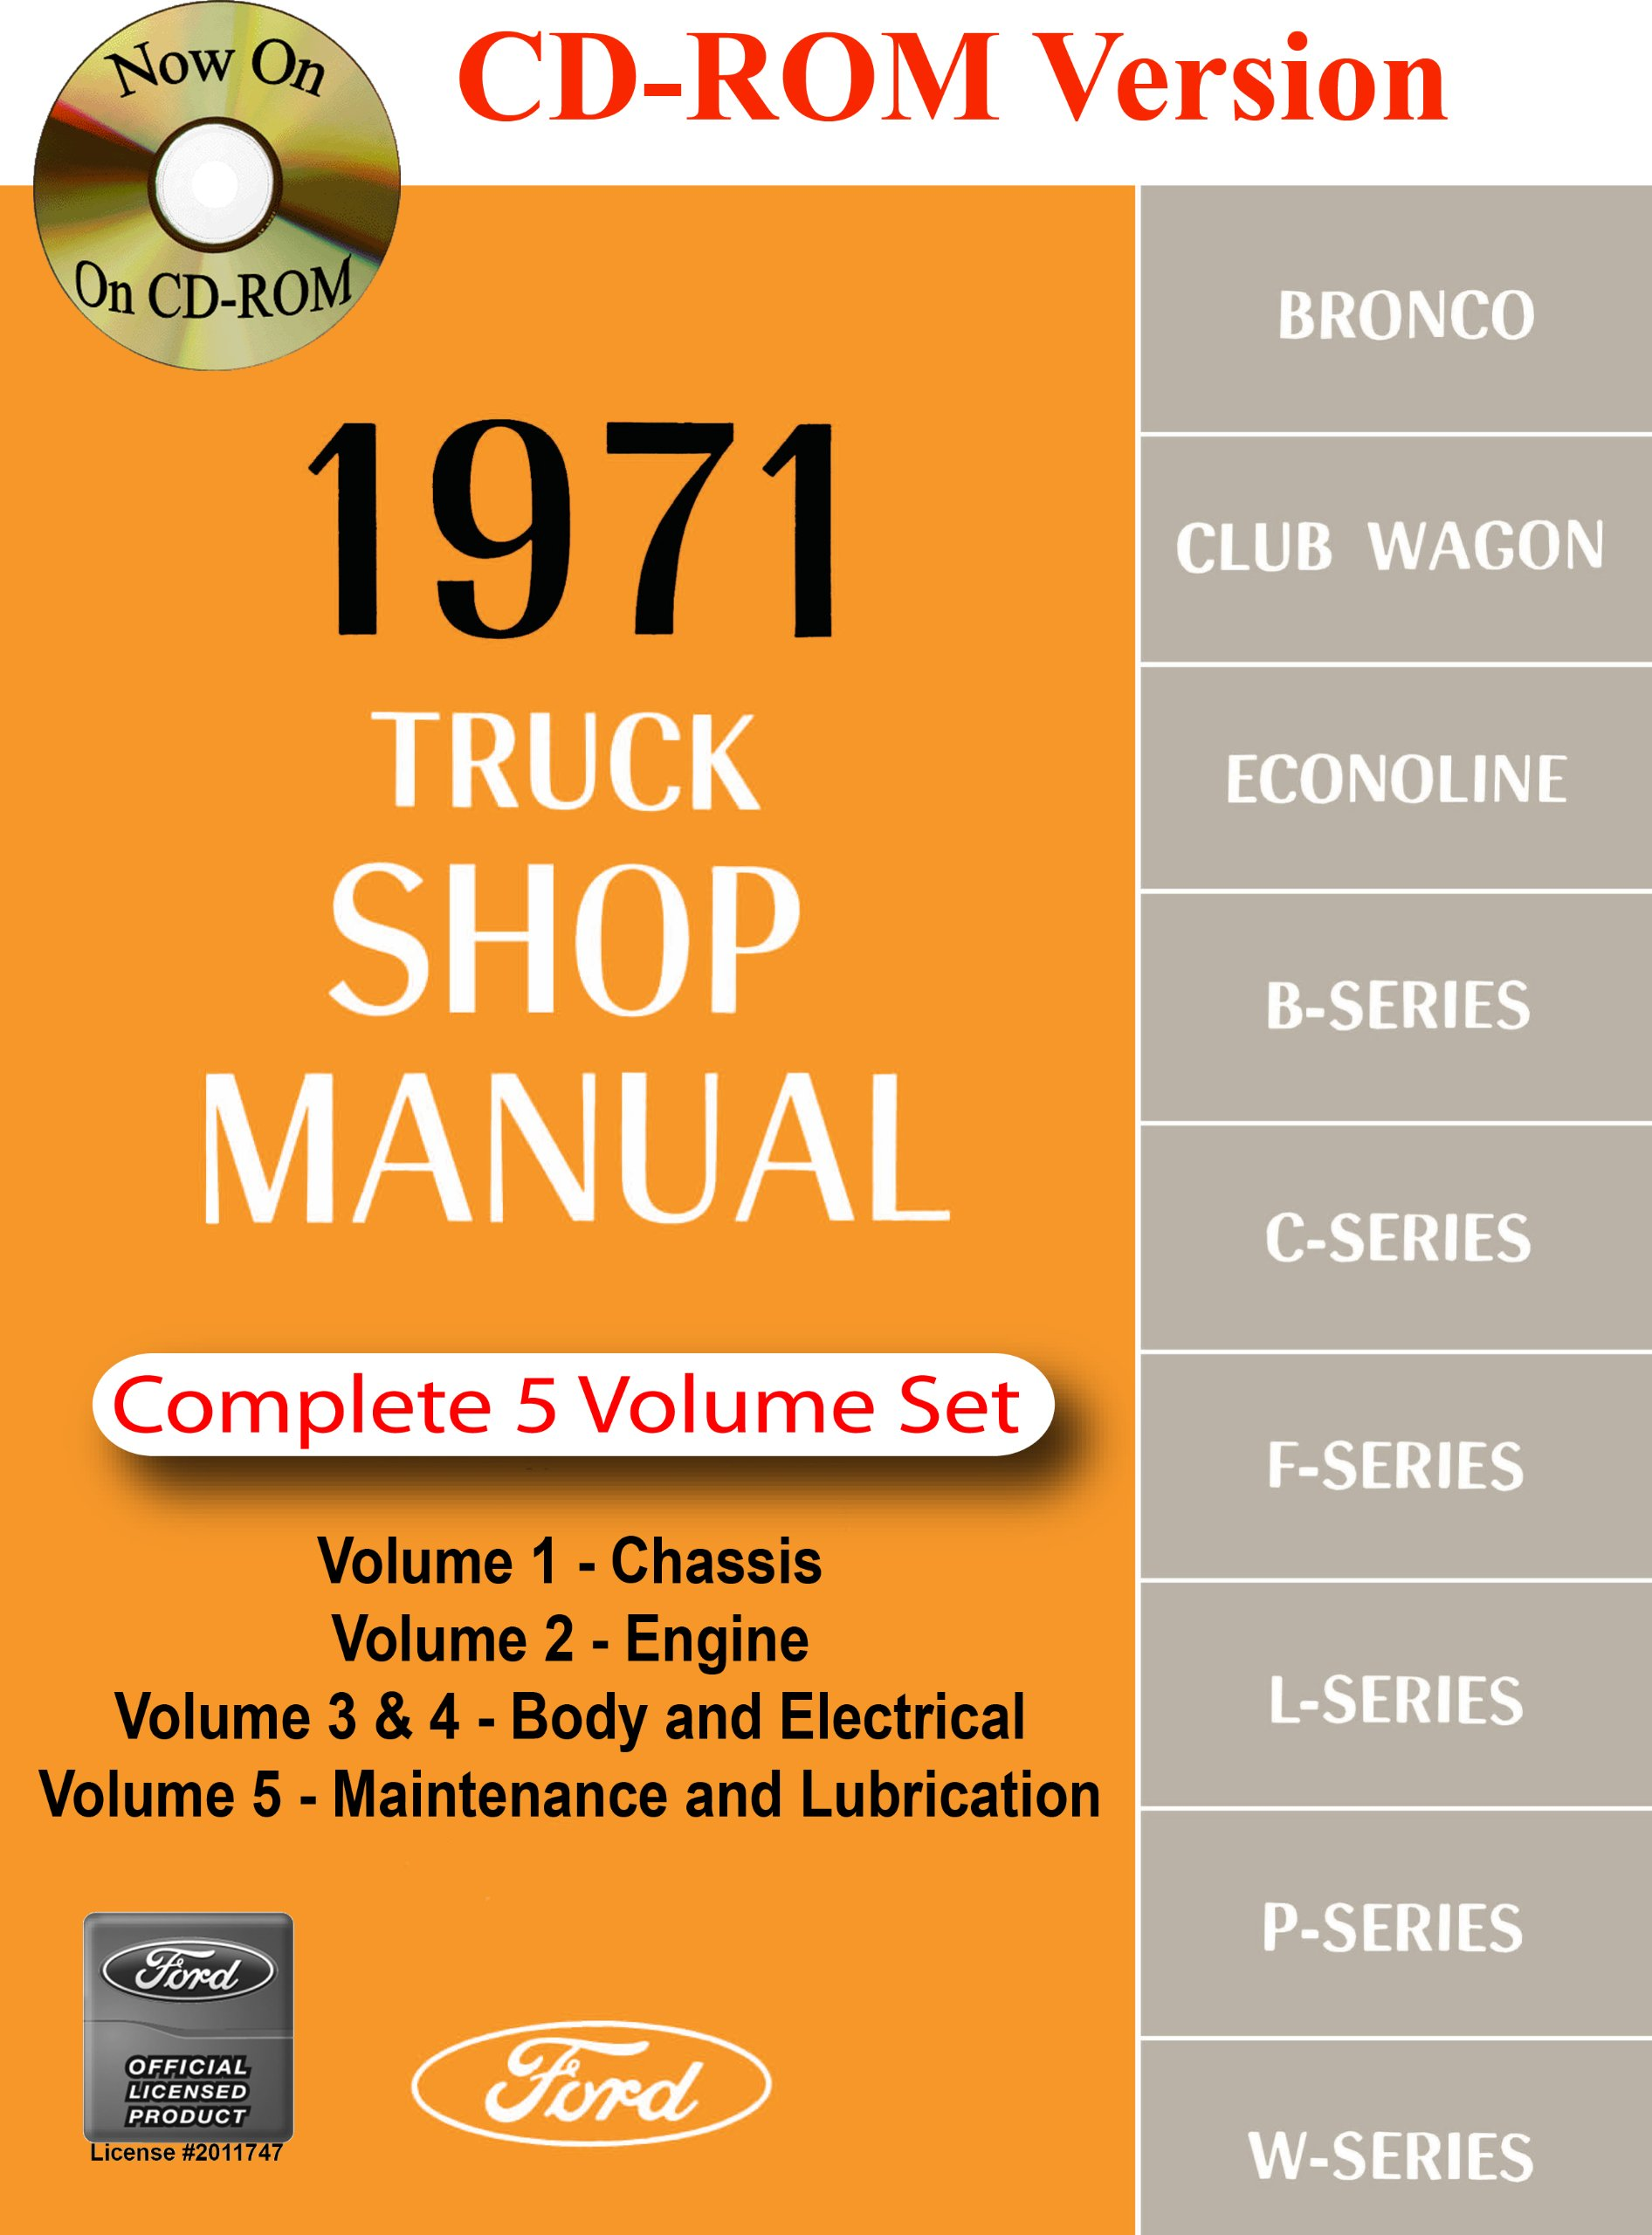 1971 ford truck shop manual ford motor company david e leblanc rh amazon com